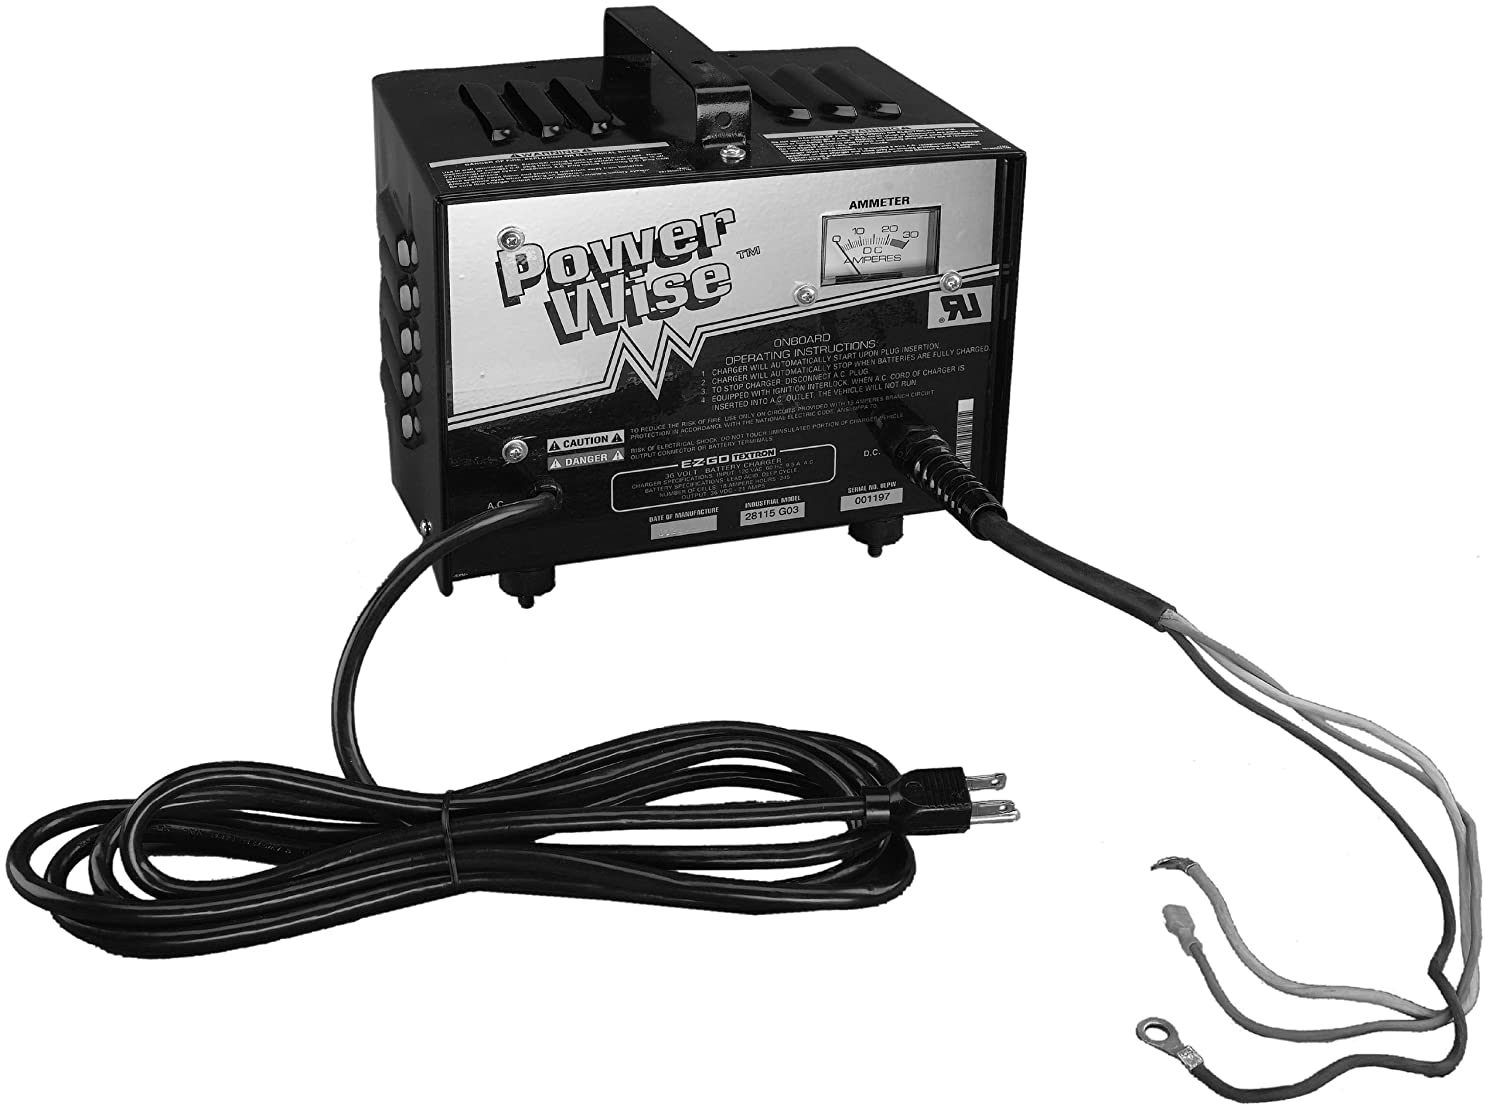 36 volt yamaha battery wiring diagram winch for atv ezgo on board lester charger review car